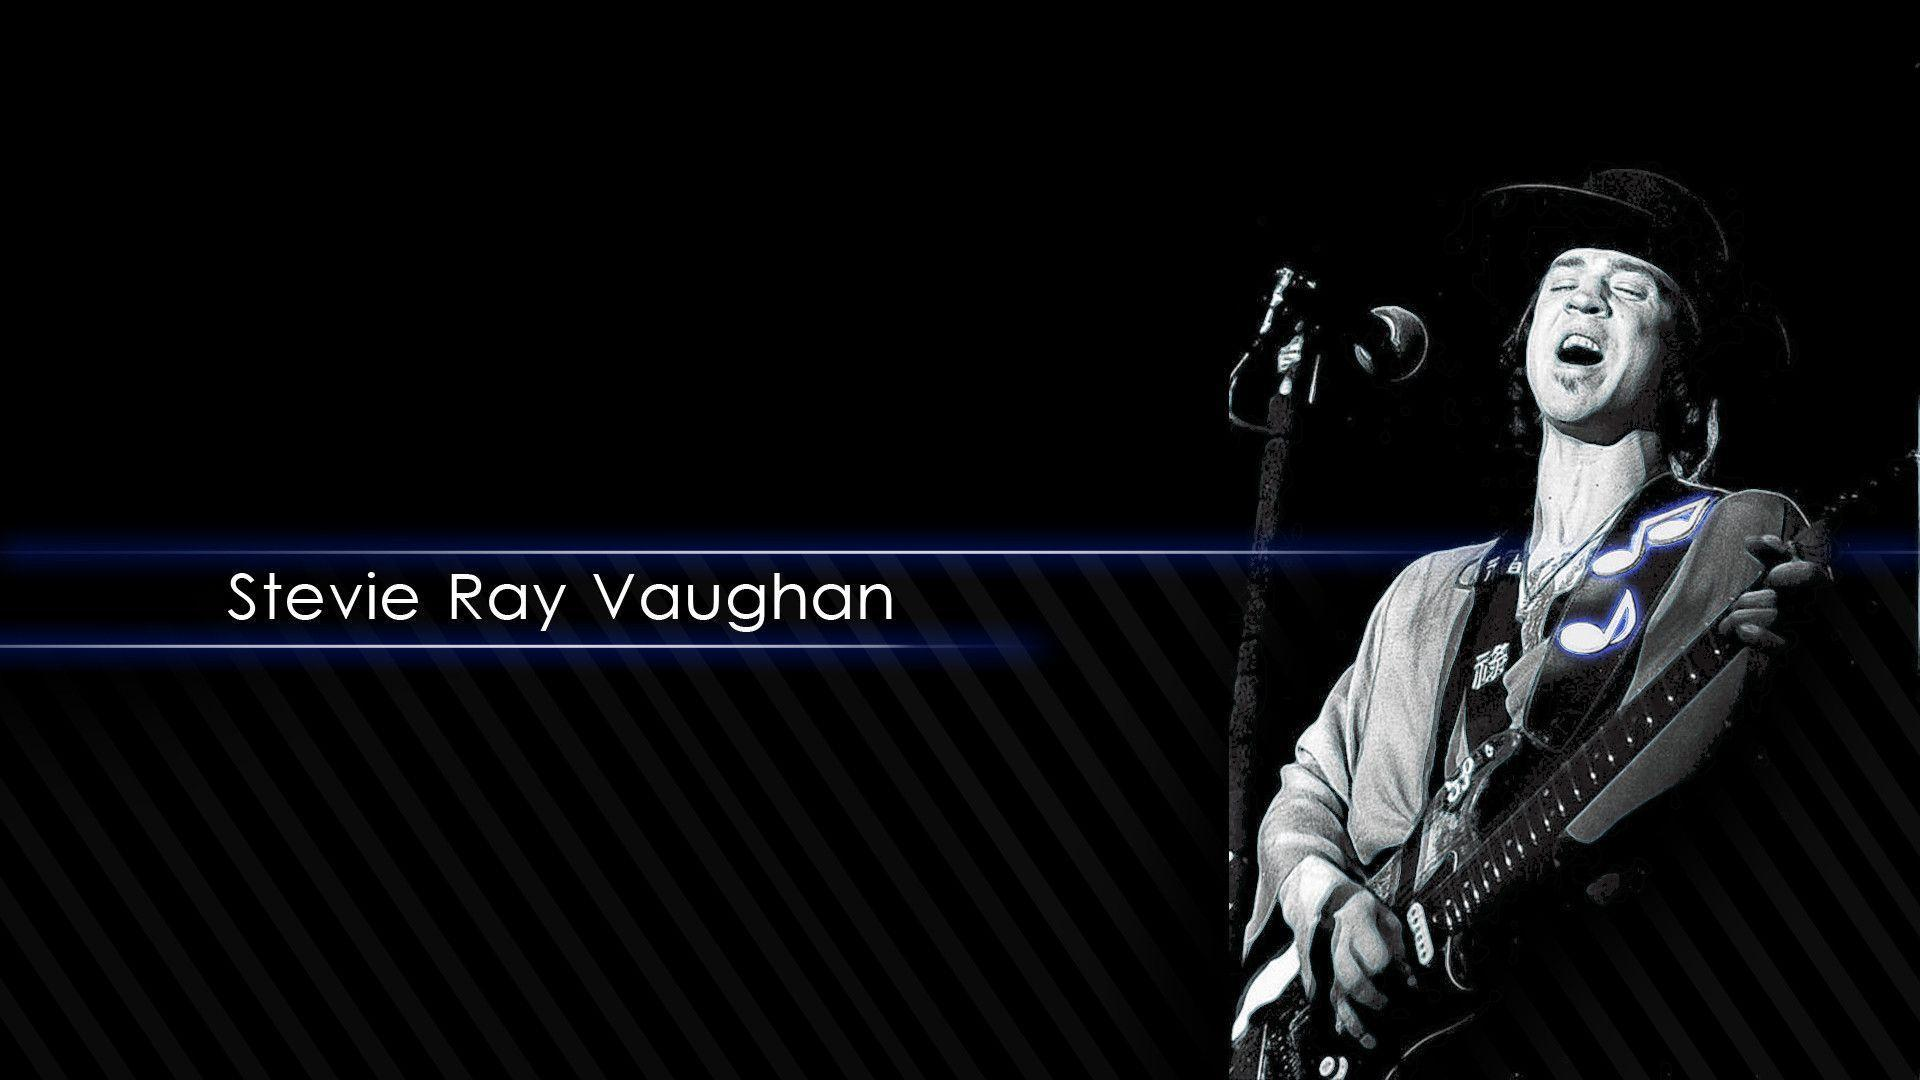 Wallpapers For > Stevie Ray Vaughan Desktop Wallpapers